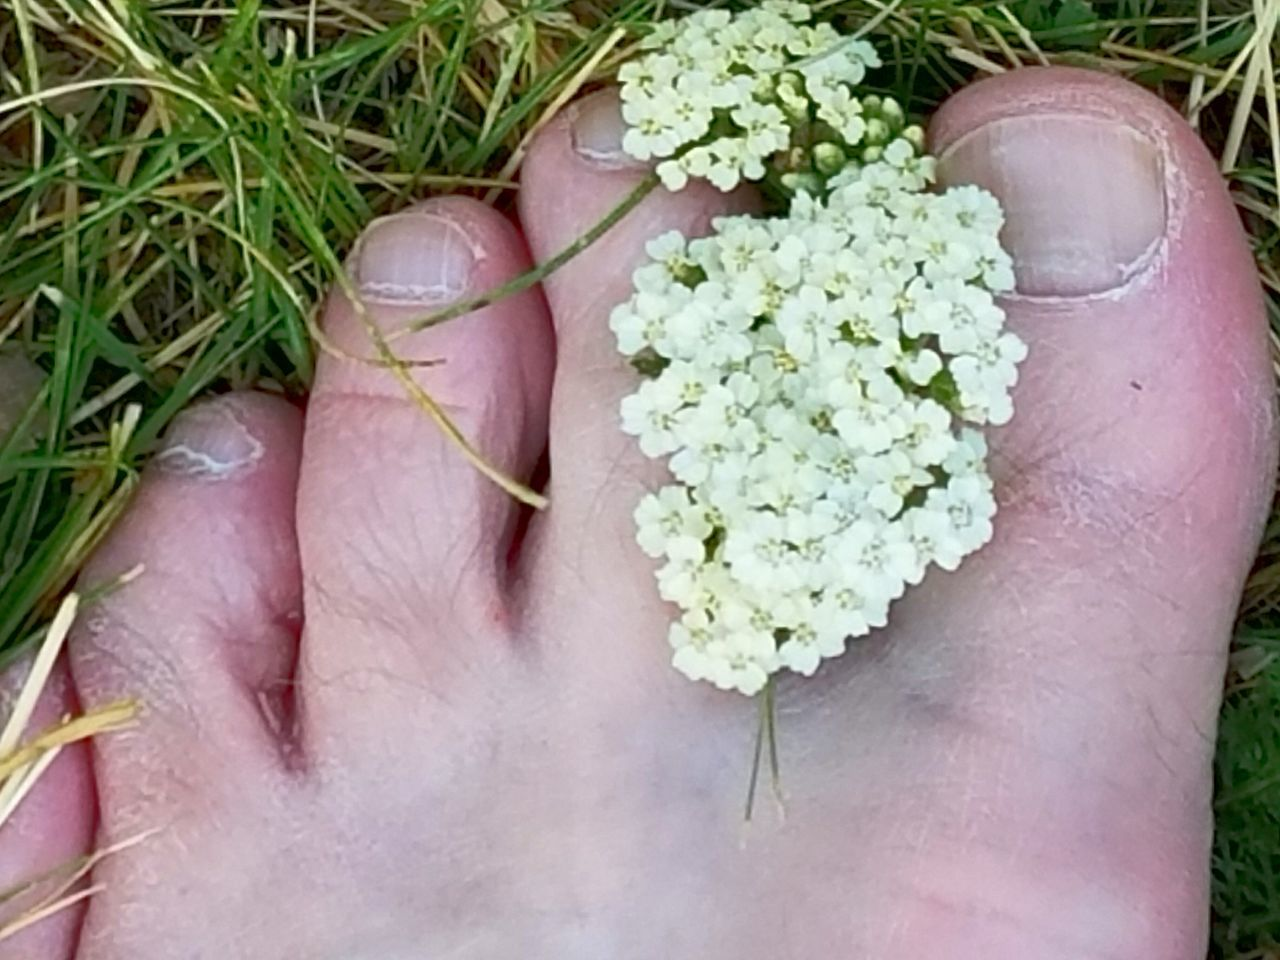 human body part, one person, real people, human hand, lifestyles, close-up, outdoors, leisure activity, low section, human leg, day, grass, freshness, people, adult, adults only